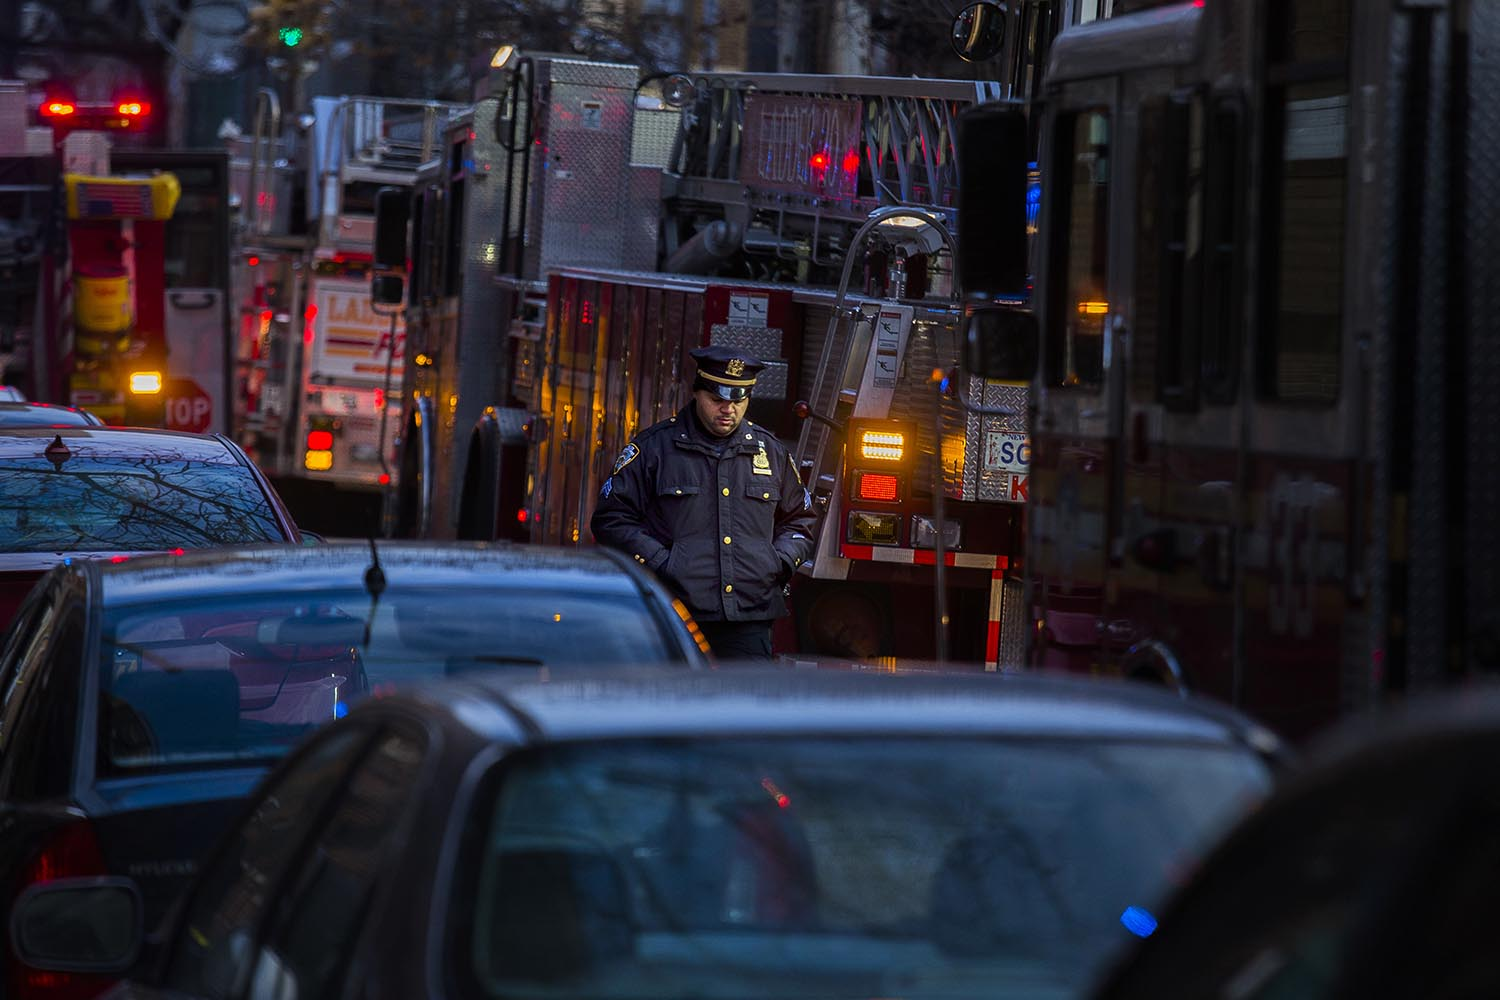 <div class='meta'><div class='origin-logo' data-origin='AP'></div><span class='caption-text' data-credit='AP Photo/Andres Kudacki'>A police officer walks in between firefighters trucks Friday, Dec. 29, 2017, in the Bronx.</span></div>